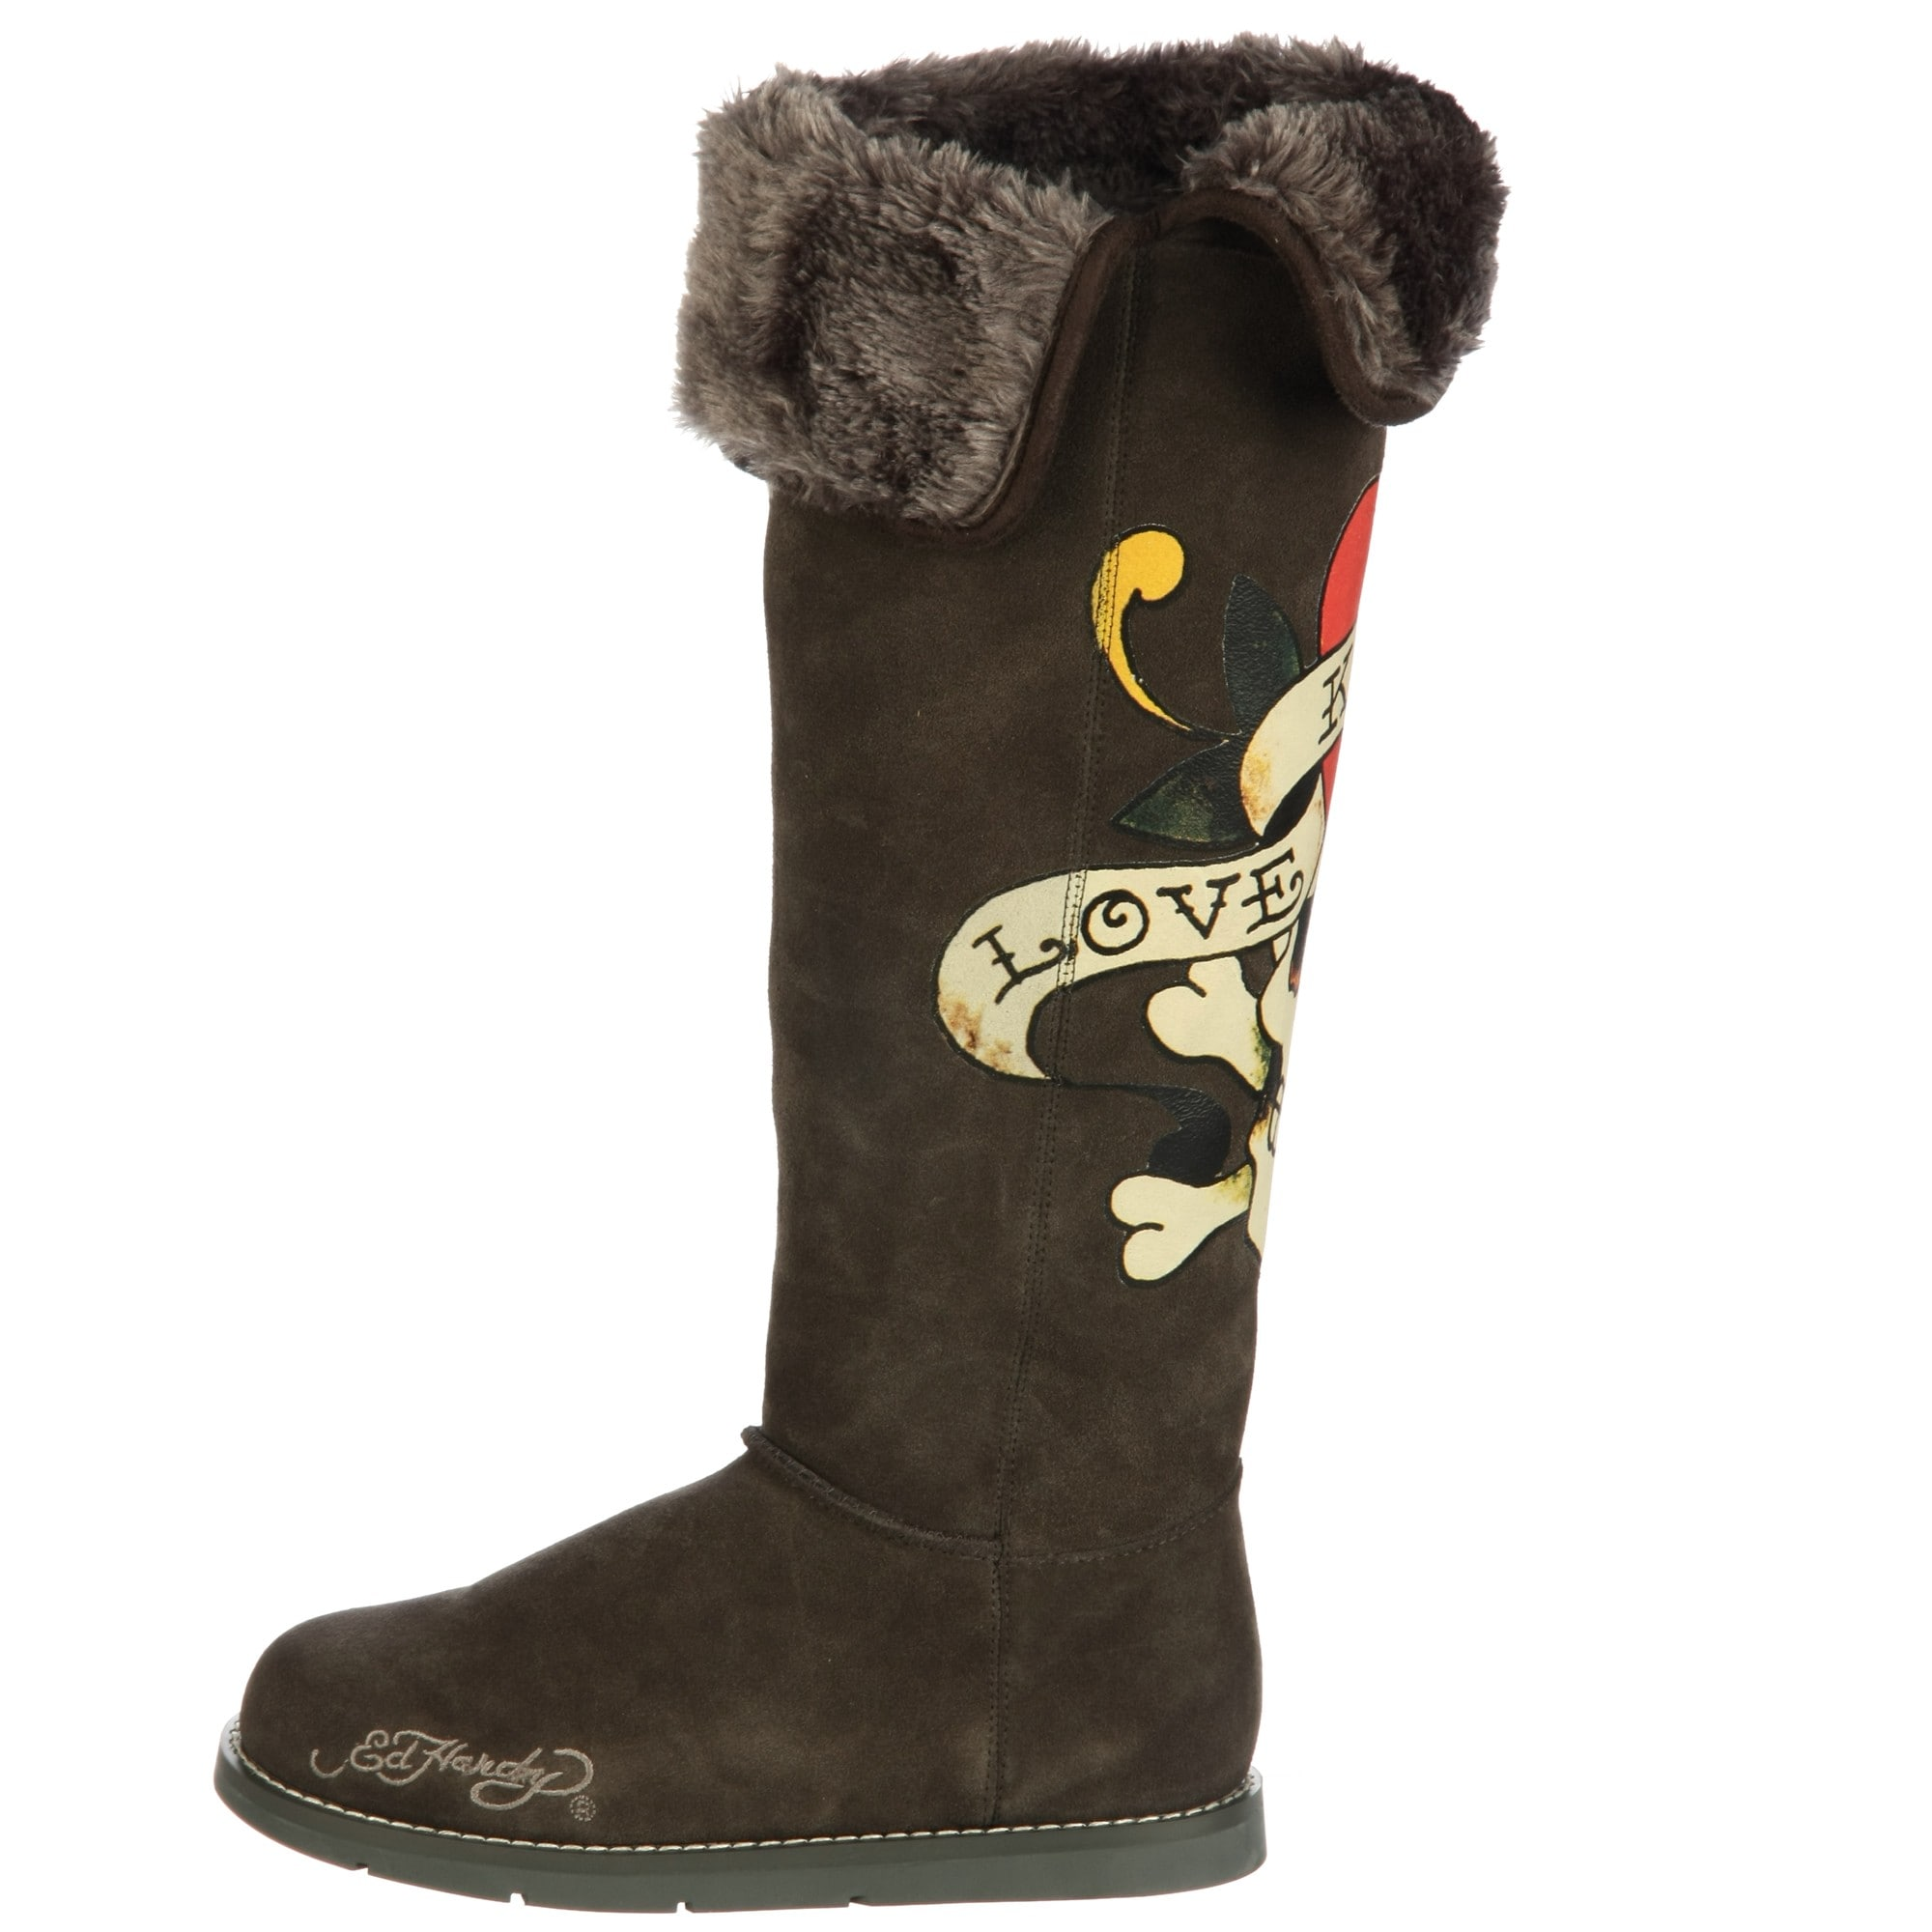 d6fe3fcc7a633a Shop Ed Hardy Women's 'Himalaya 2' Faux Fur High Boots FINAL SALE - Free  Shipping Today - Overstock - 6048099